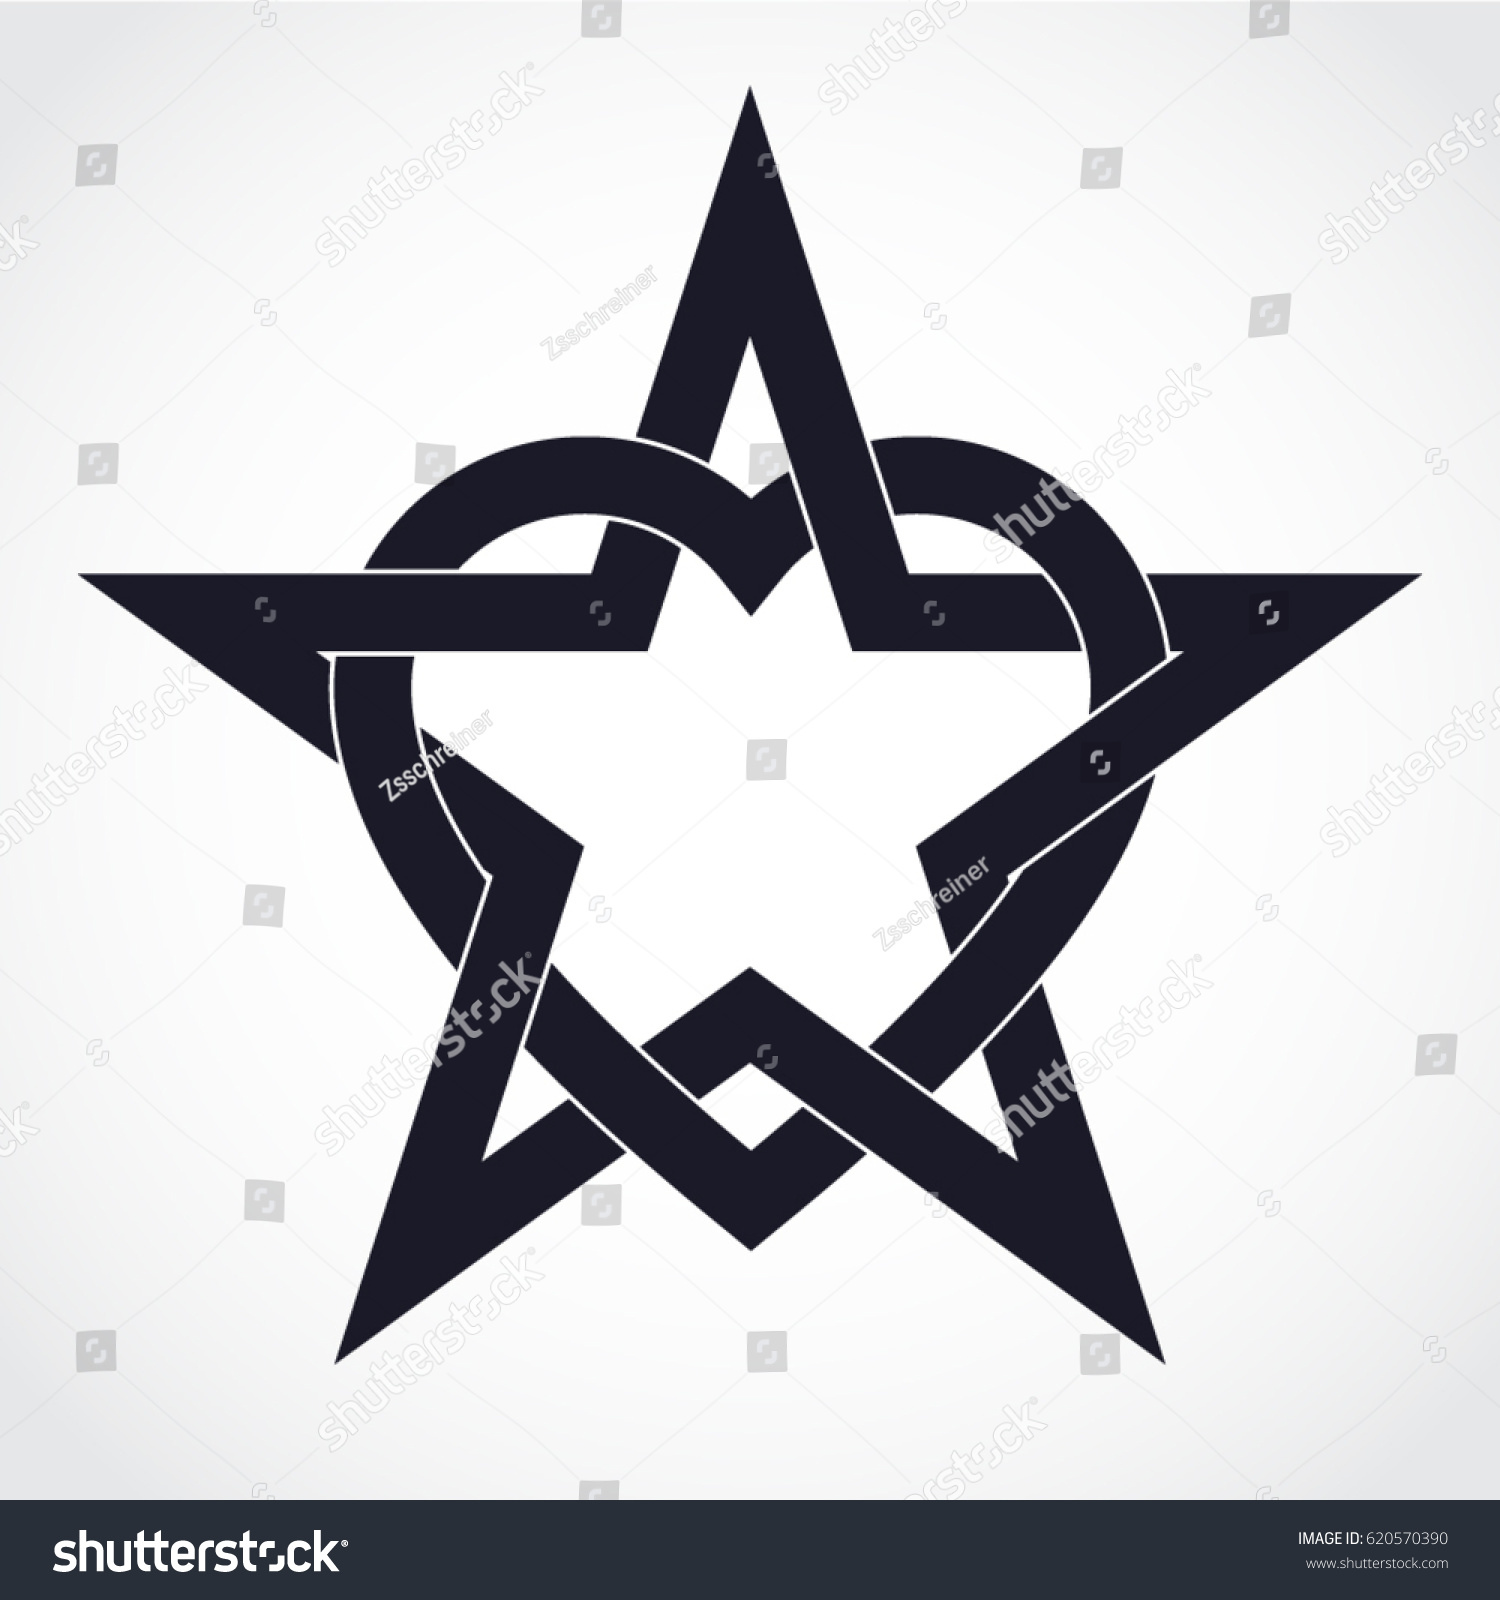 Silhouette Heart Star Symbol Stock Vector Royalty Free 620570390